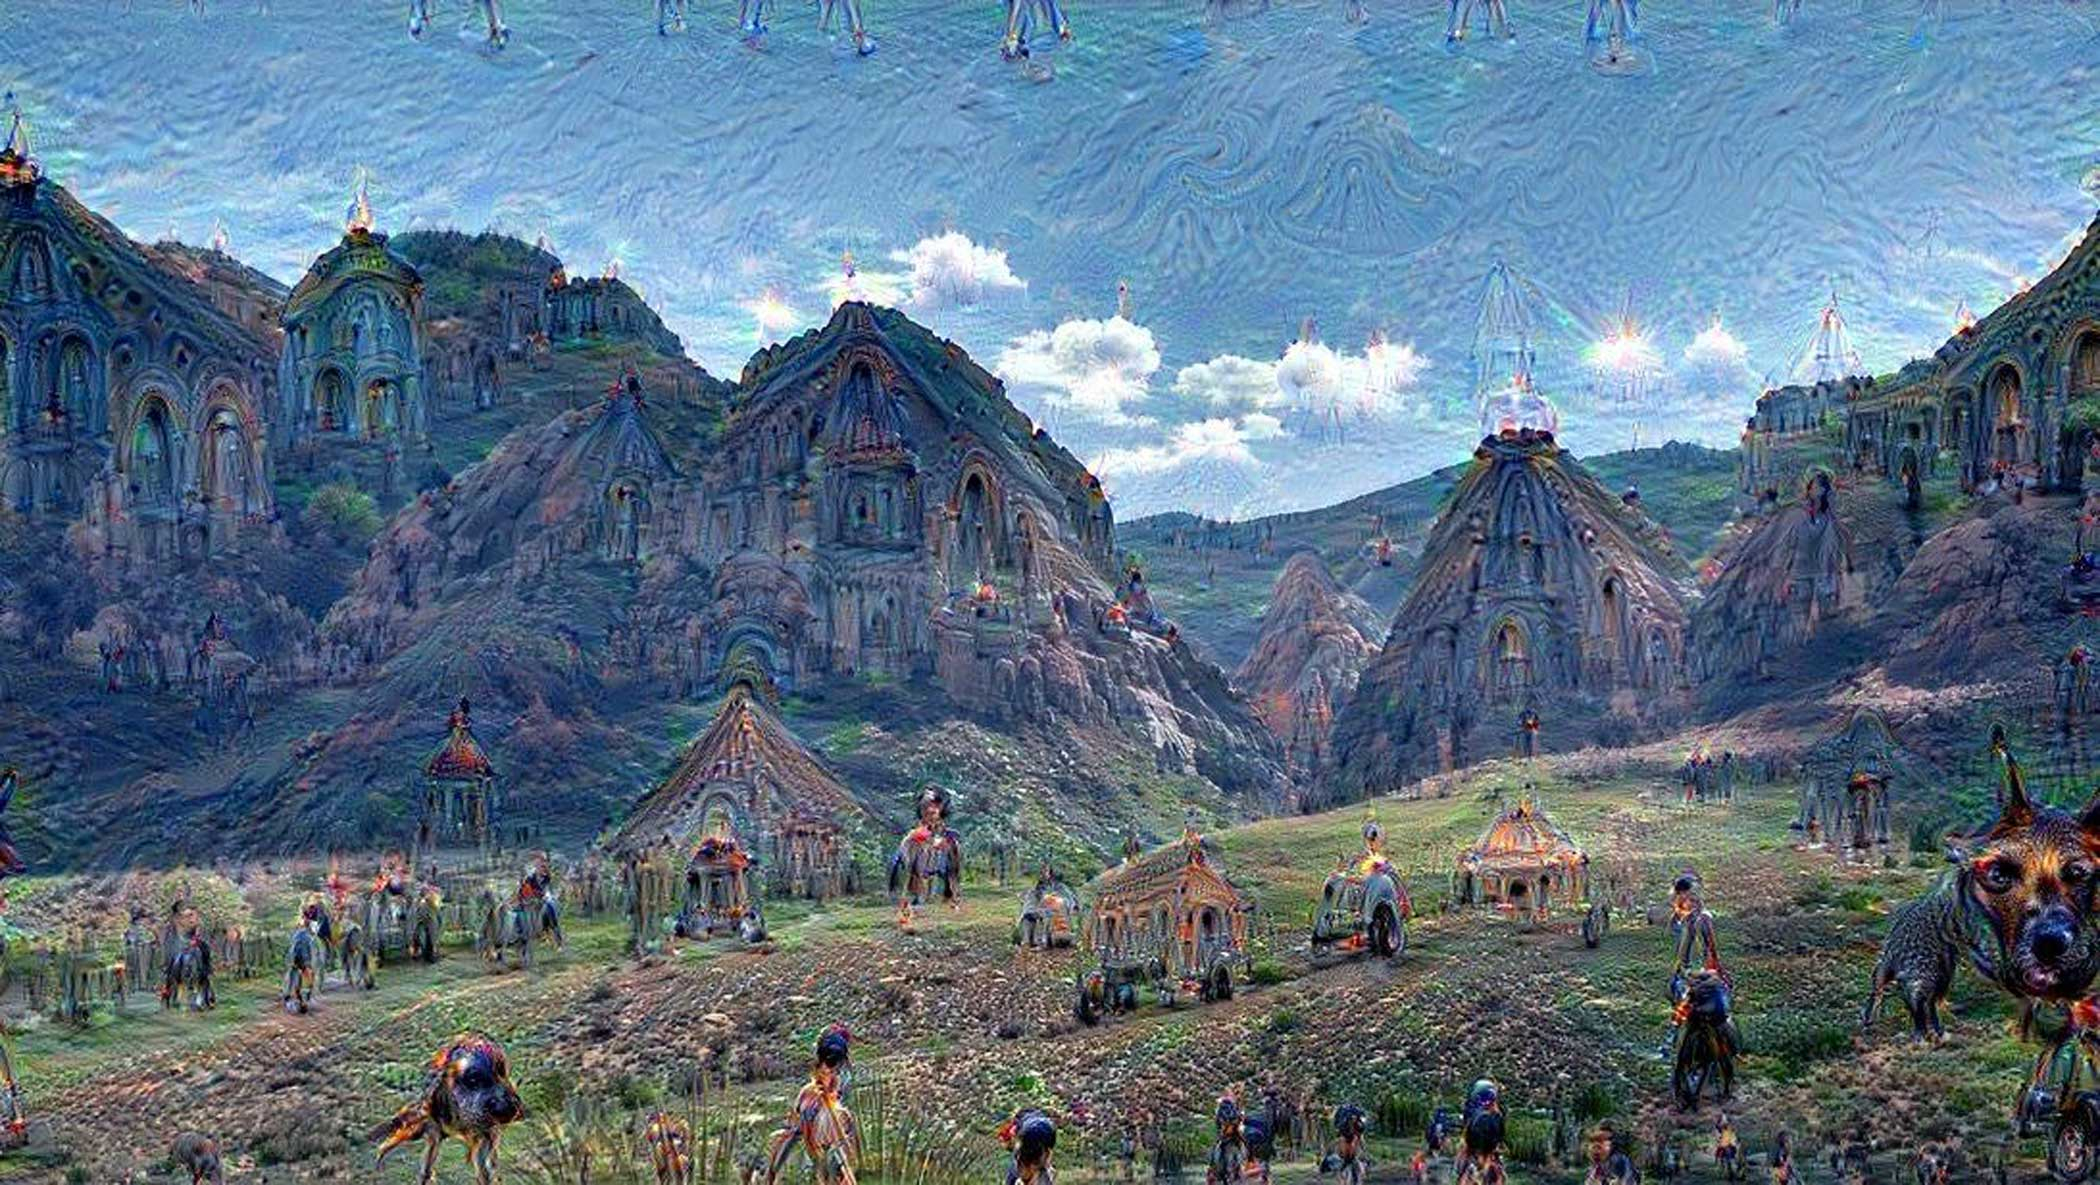 In the future neural networks could be used by artists as a new form of visual expression